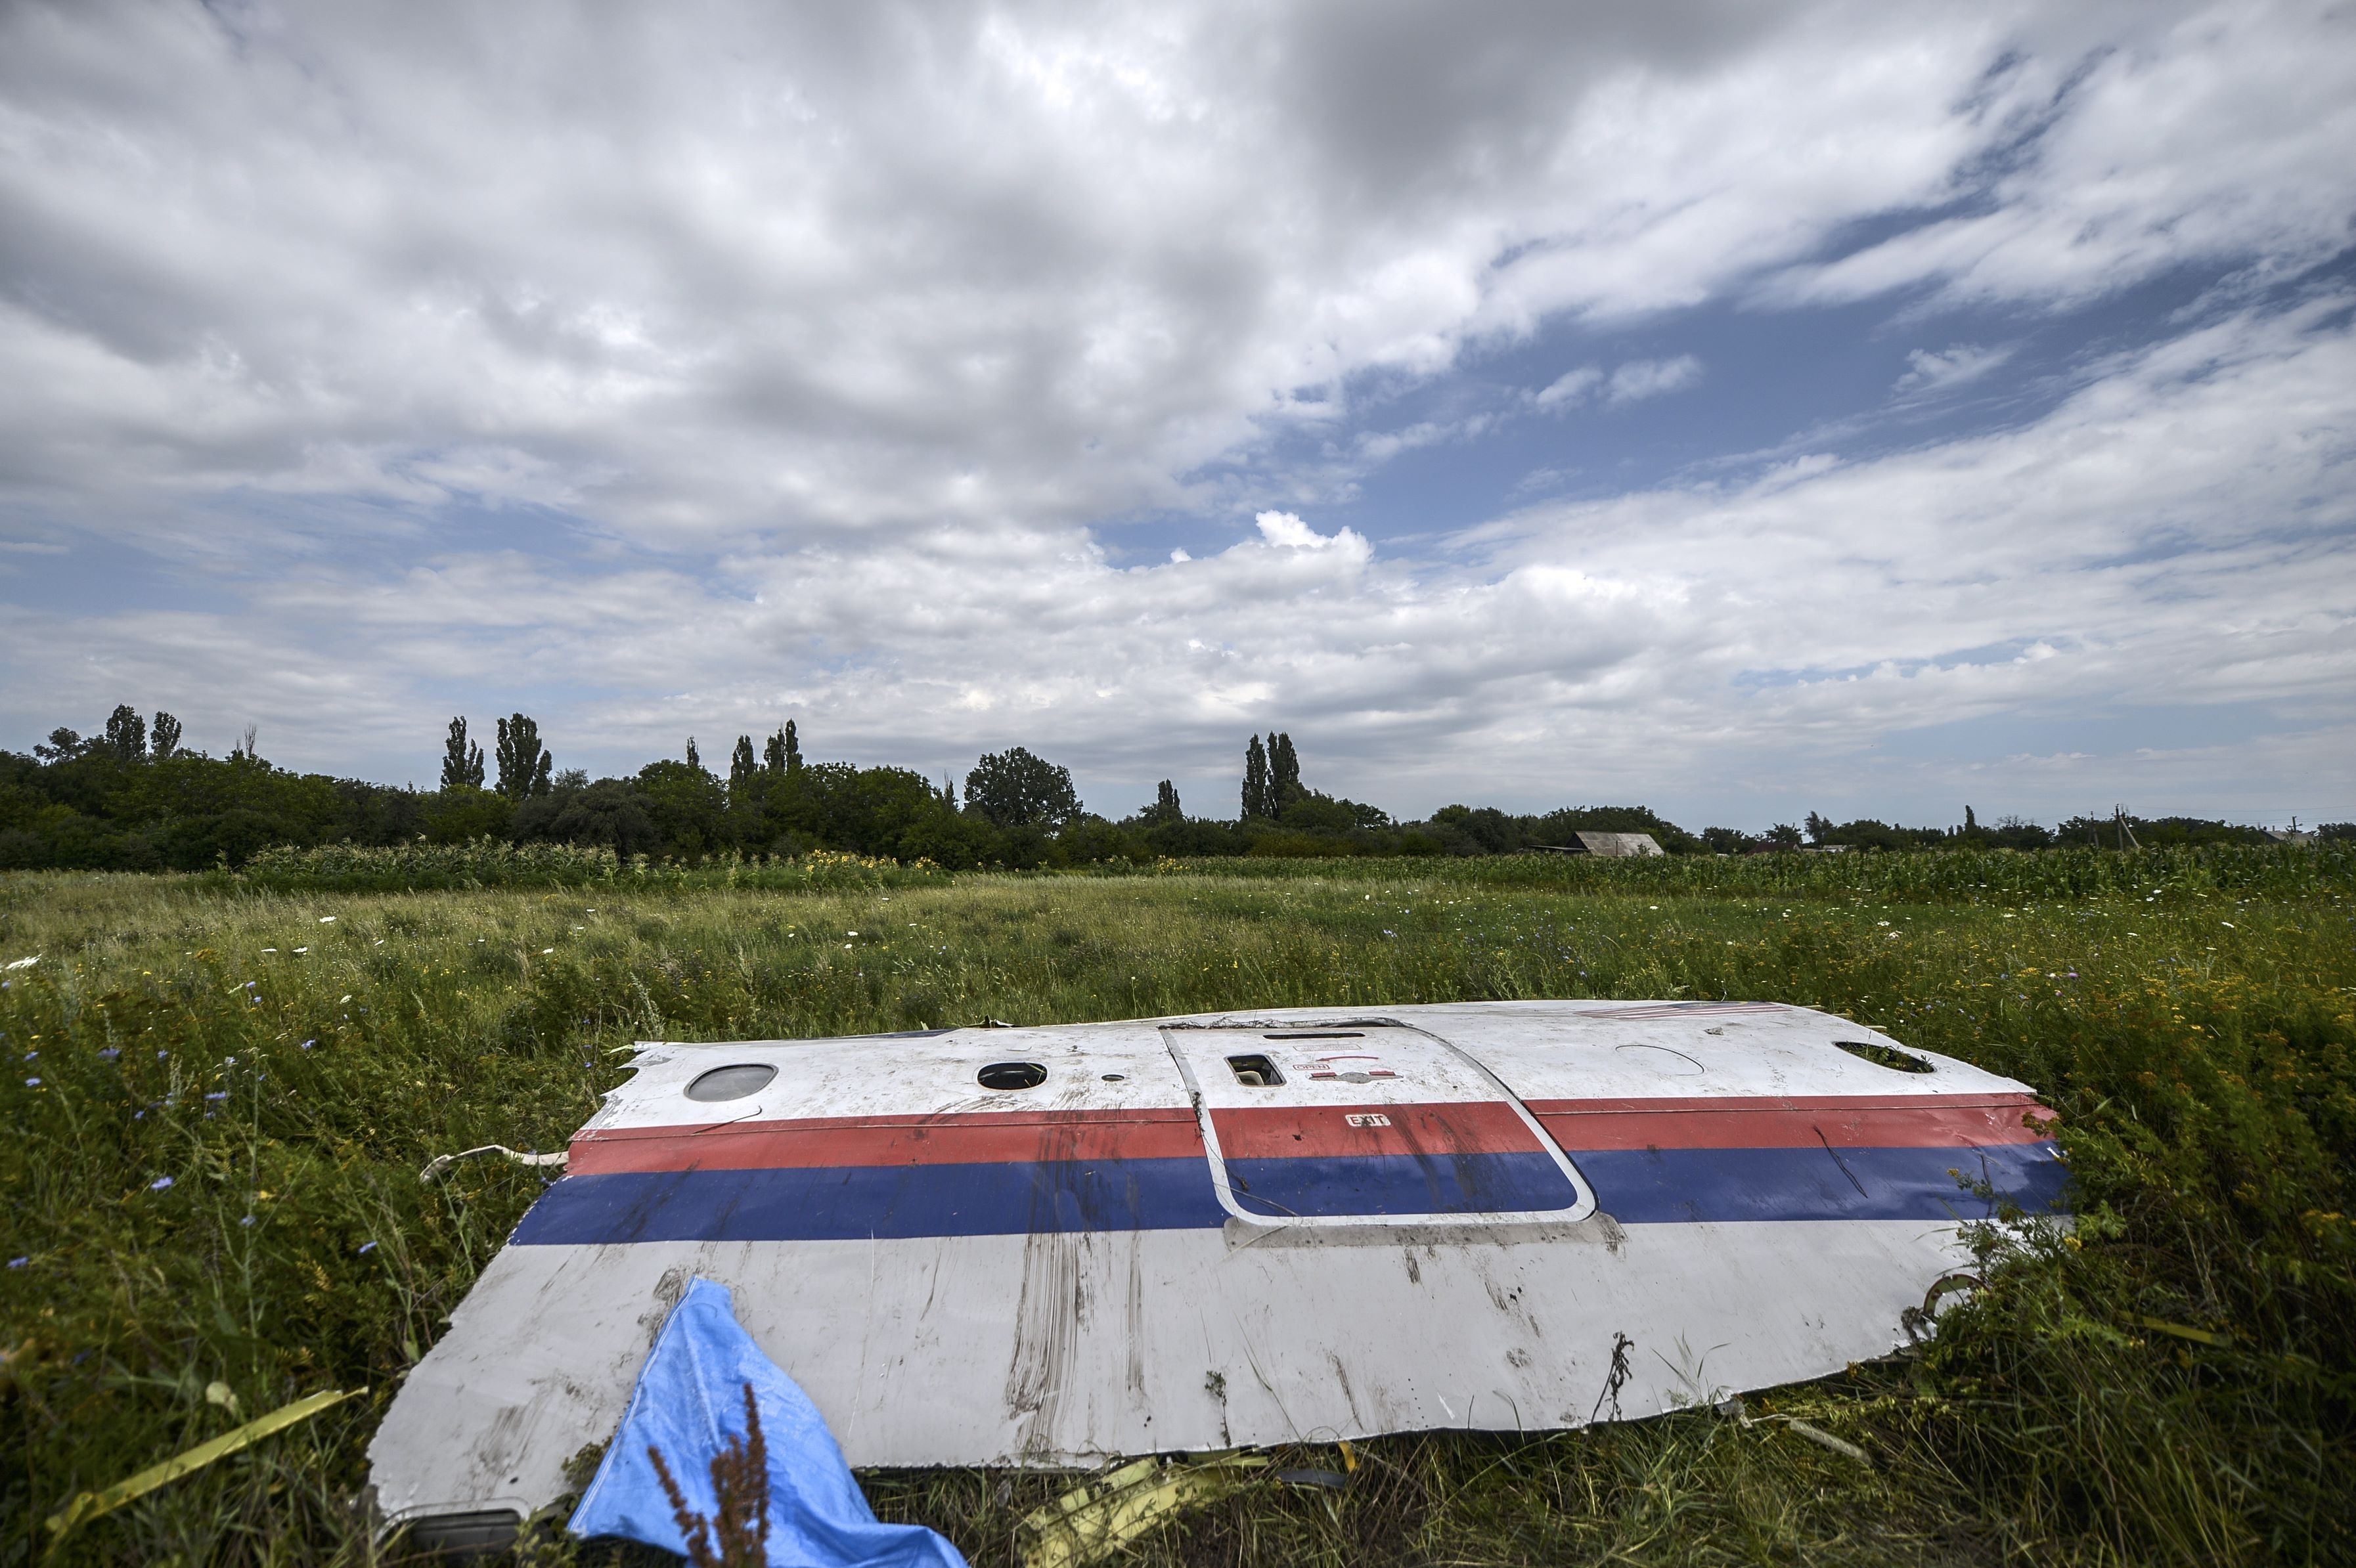 Pro-Russian Separatists Shot Down MH17: Could This Crime Against Humanity Have Been Prevented?